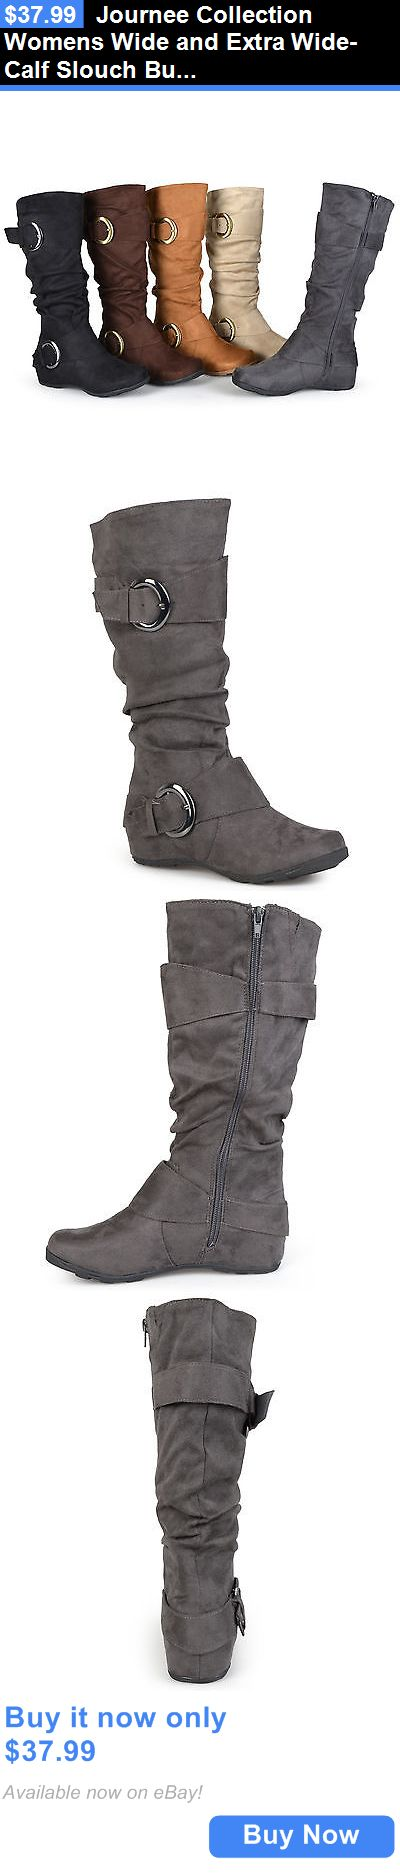 Women Boots: Journee Collection Womens Wide And Extra Wide-Calf Slouch Buckle Knee-High Boots BUY IT NOW ONLY: $37.99